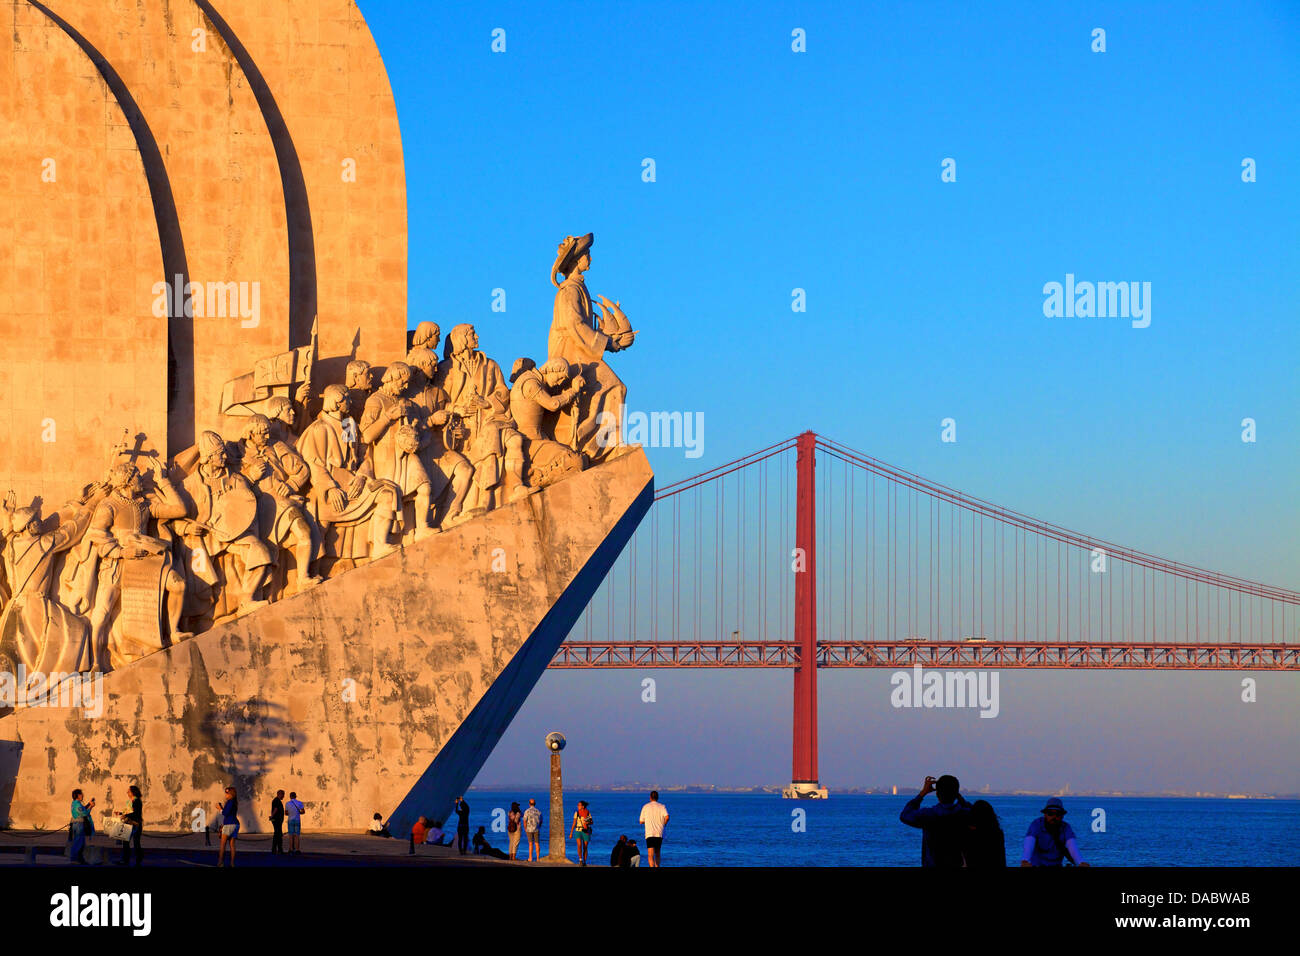 Monument to the Discoveries, Belem, Portugal, Iberian Peninsula, South West Europe - Stock Image